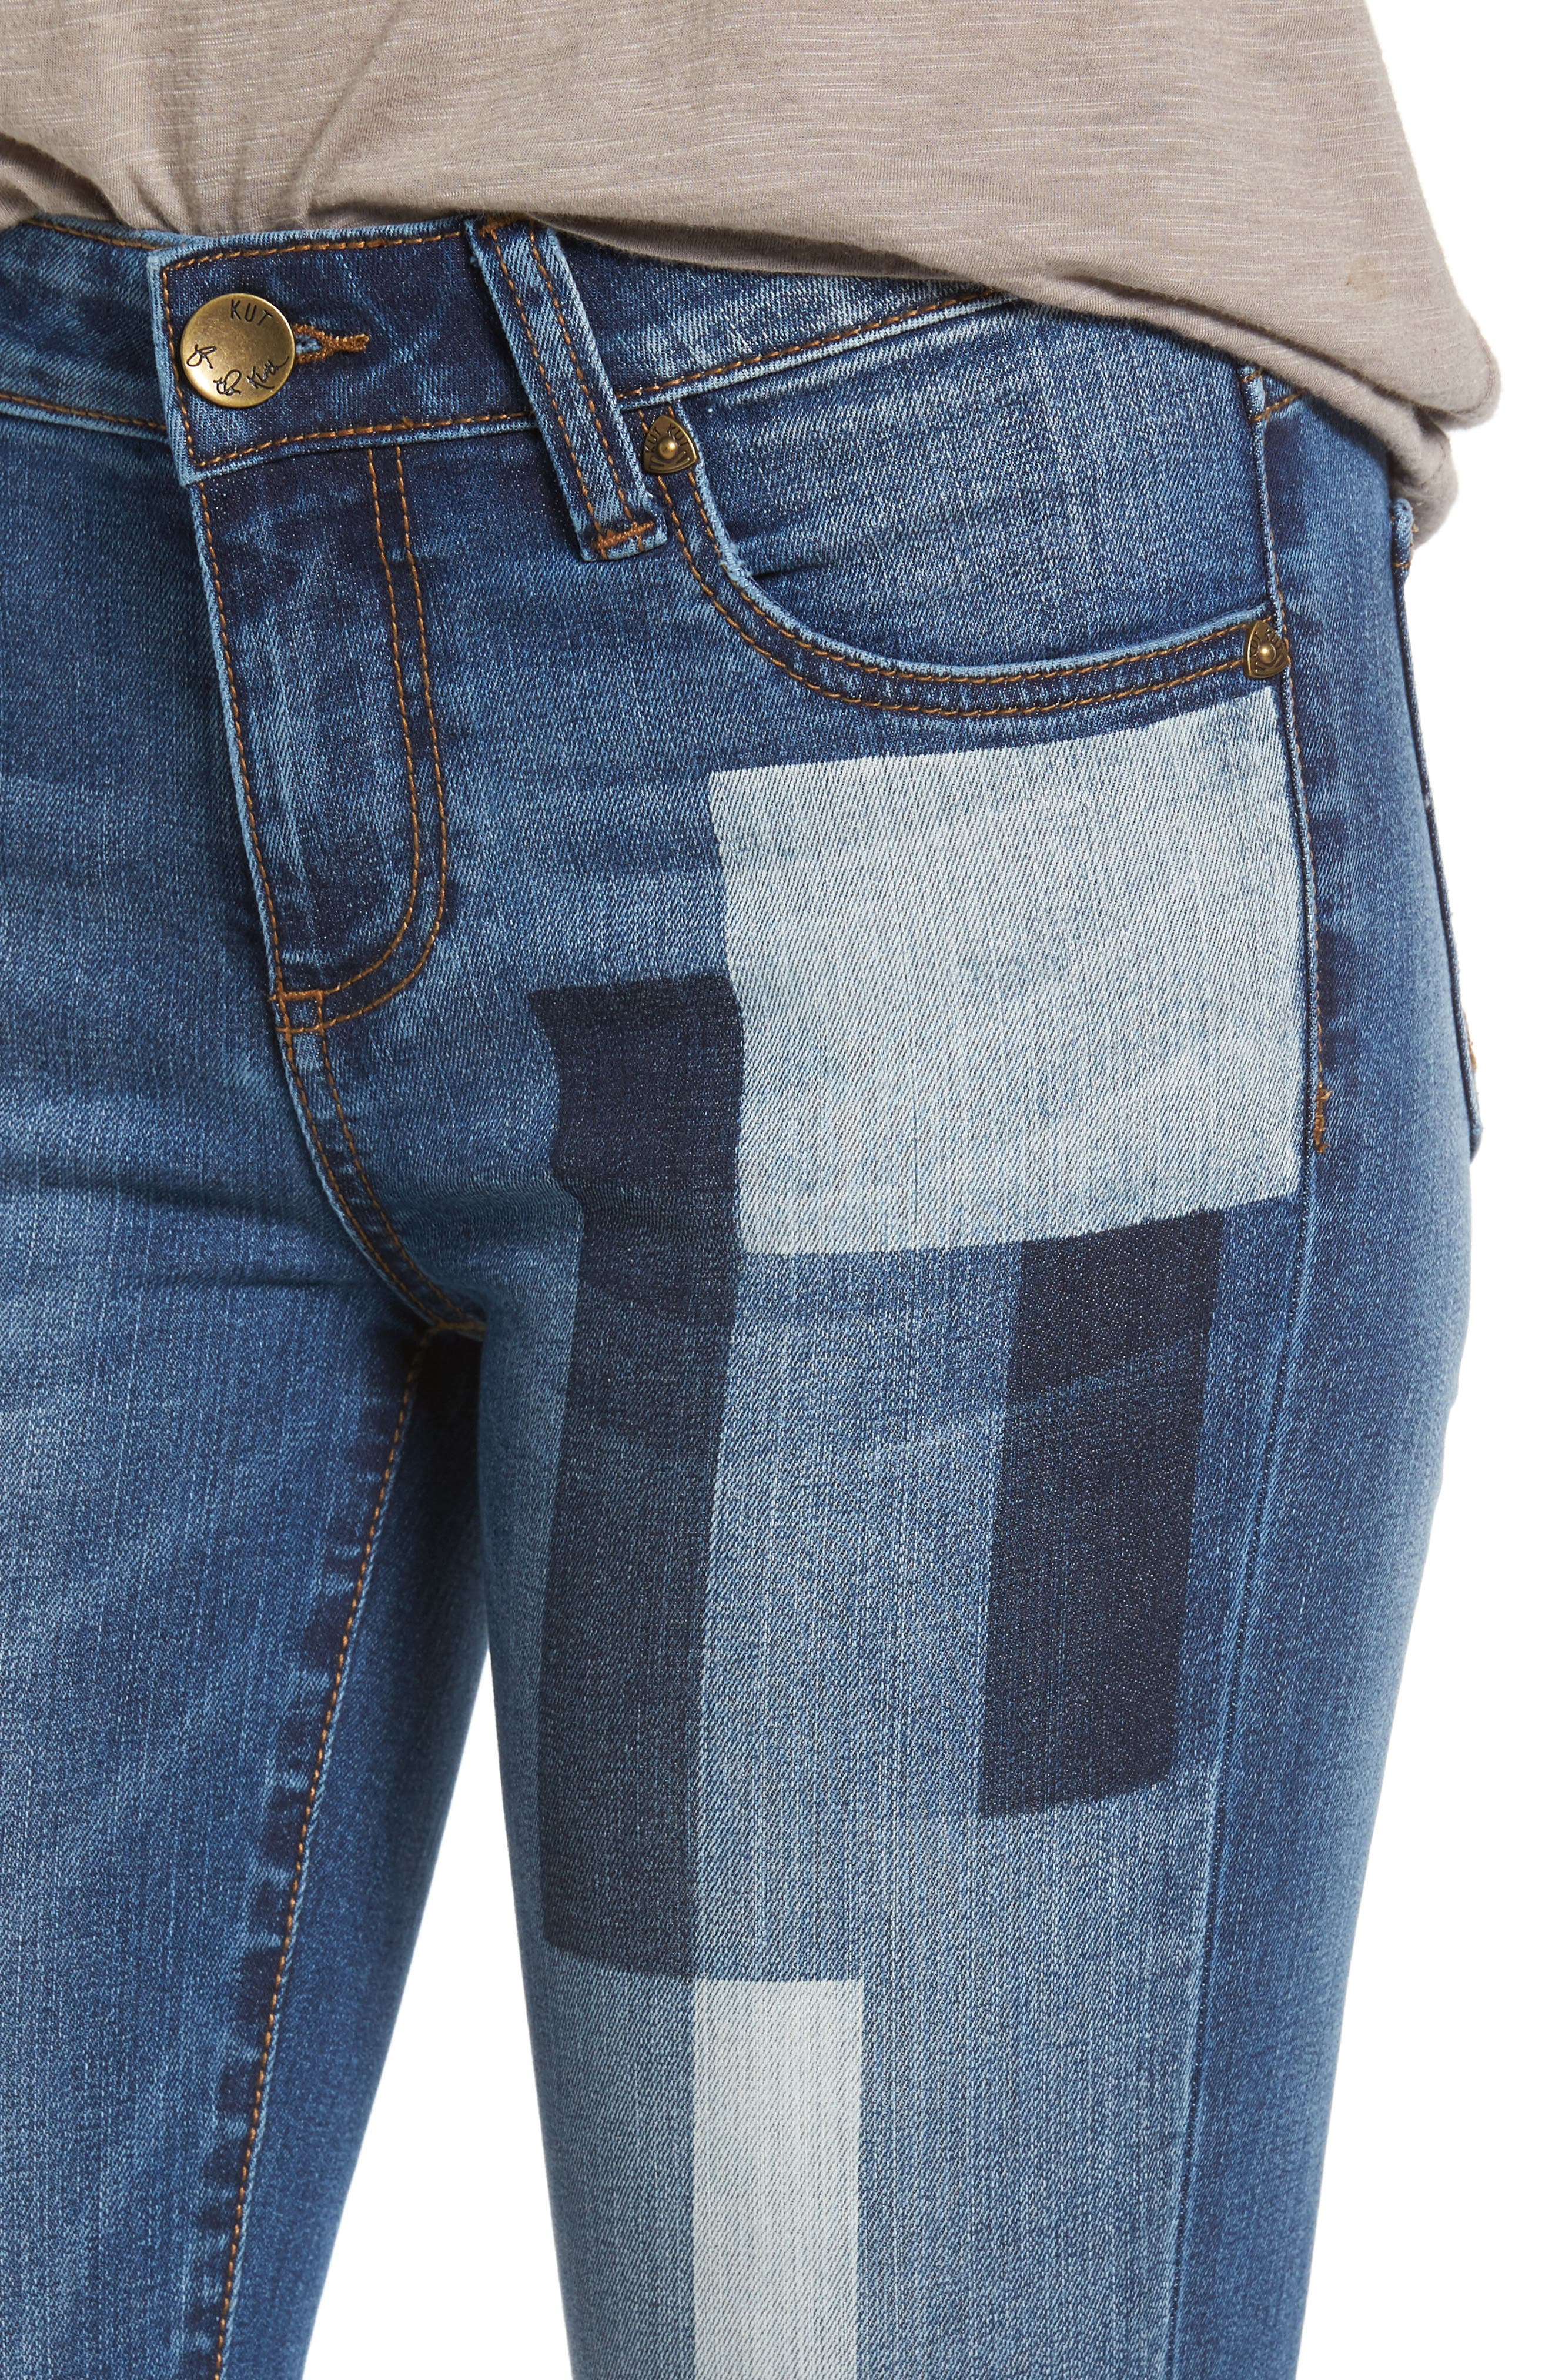 Patchwork Fade Skinny Jeans,                             Alternate thumbnail 4, color,